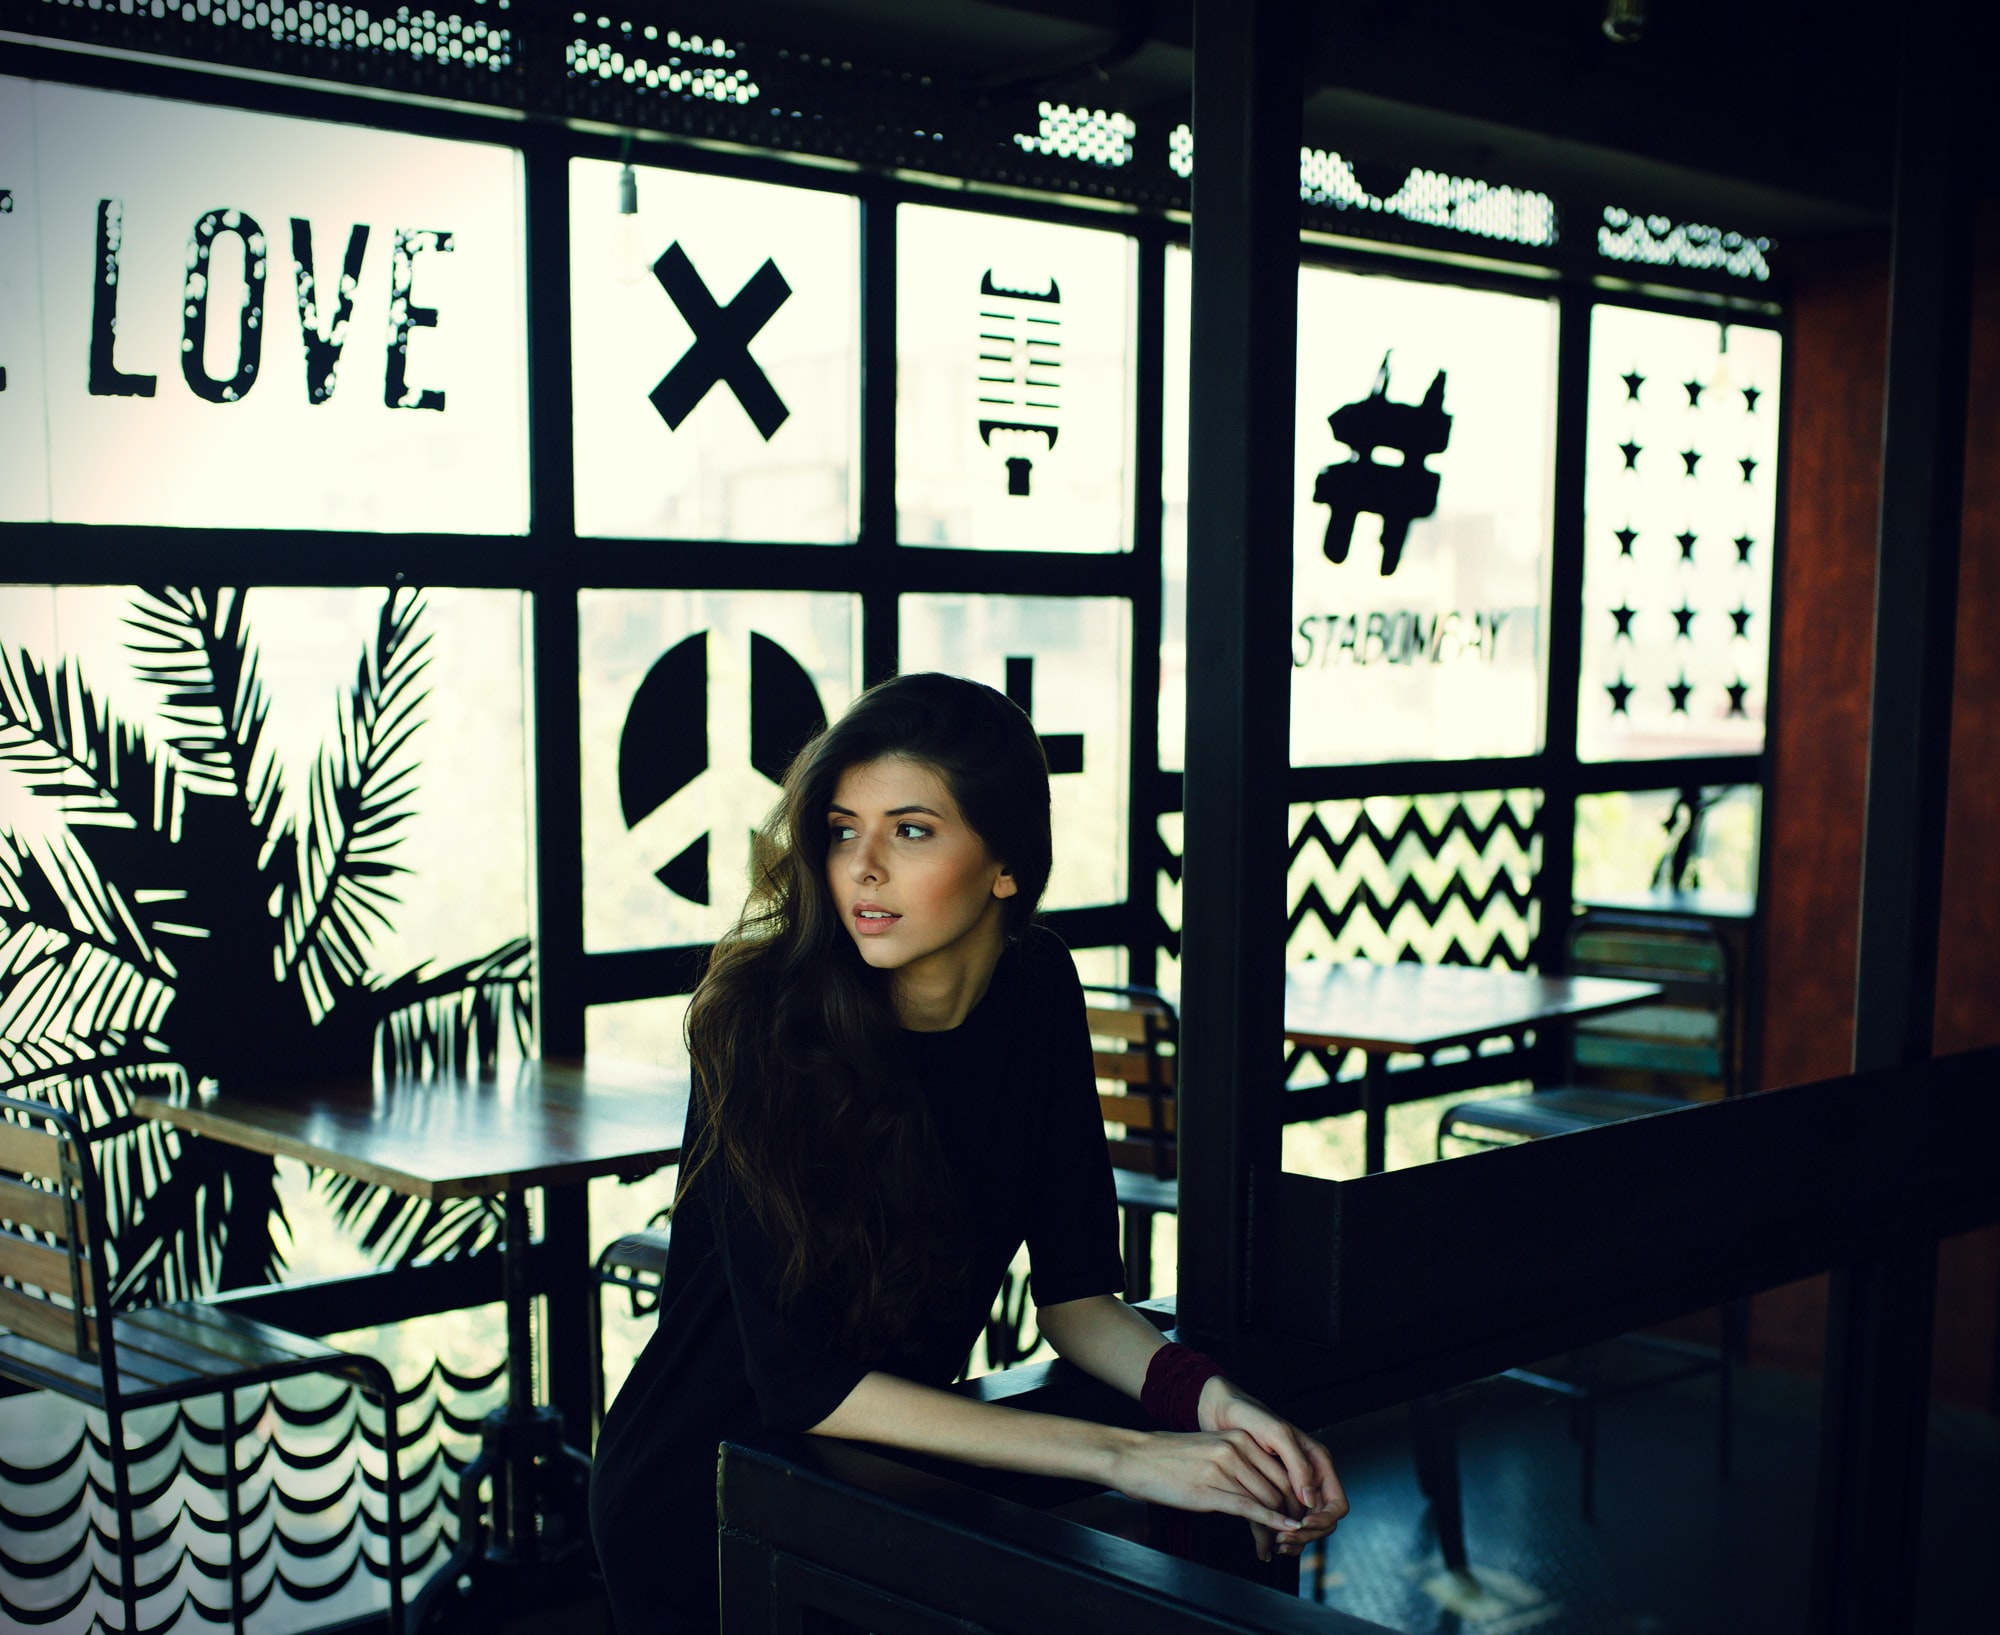 A young woman sits at a table in a cafe with decorated frosted windows